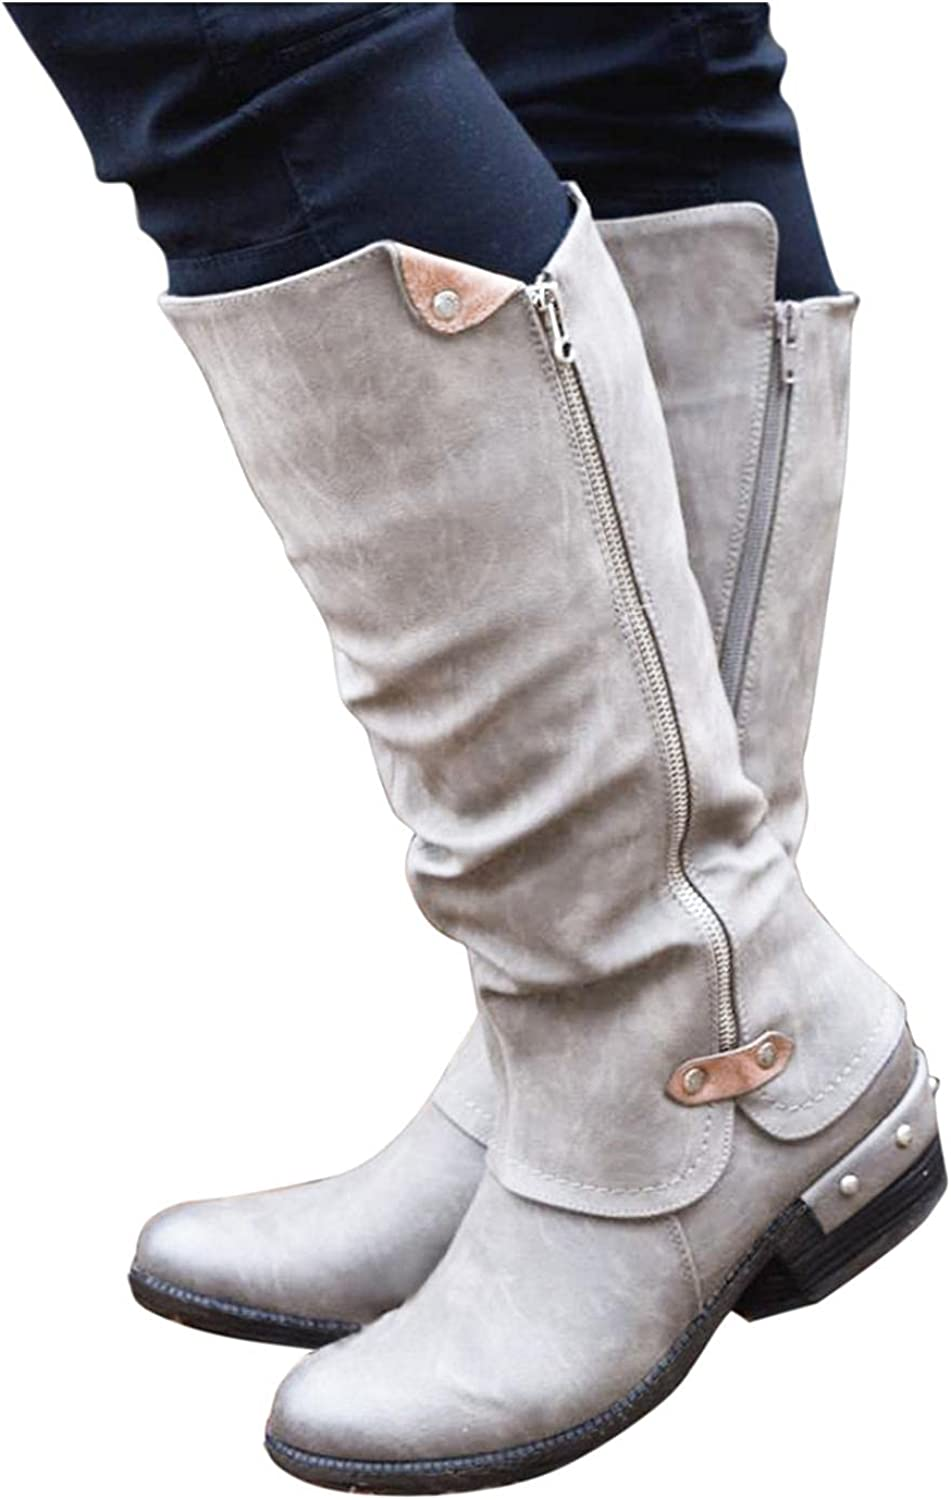 Gibobby Boots for Women with Heel Round Toe Mid-Calf Booties Fashion Cowboy Boots Low Heel Combat Boots Casual Western Shoes